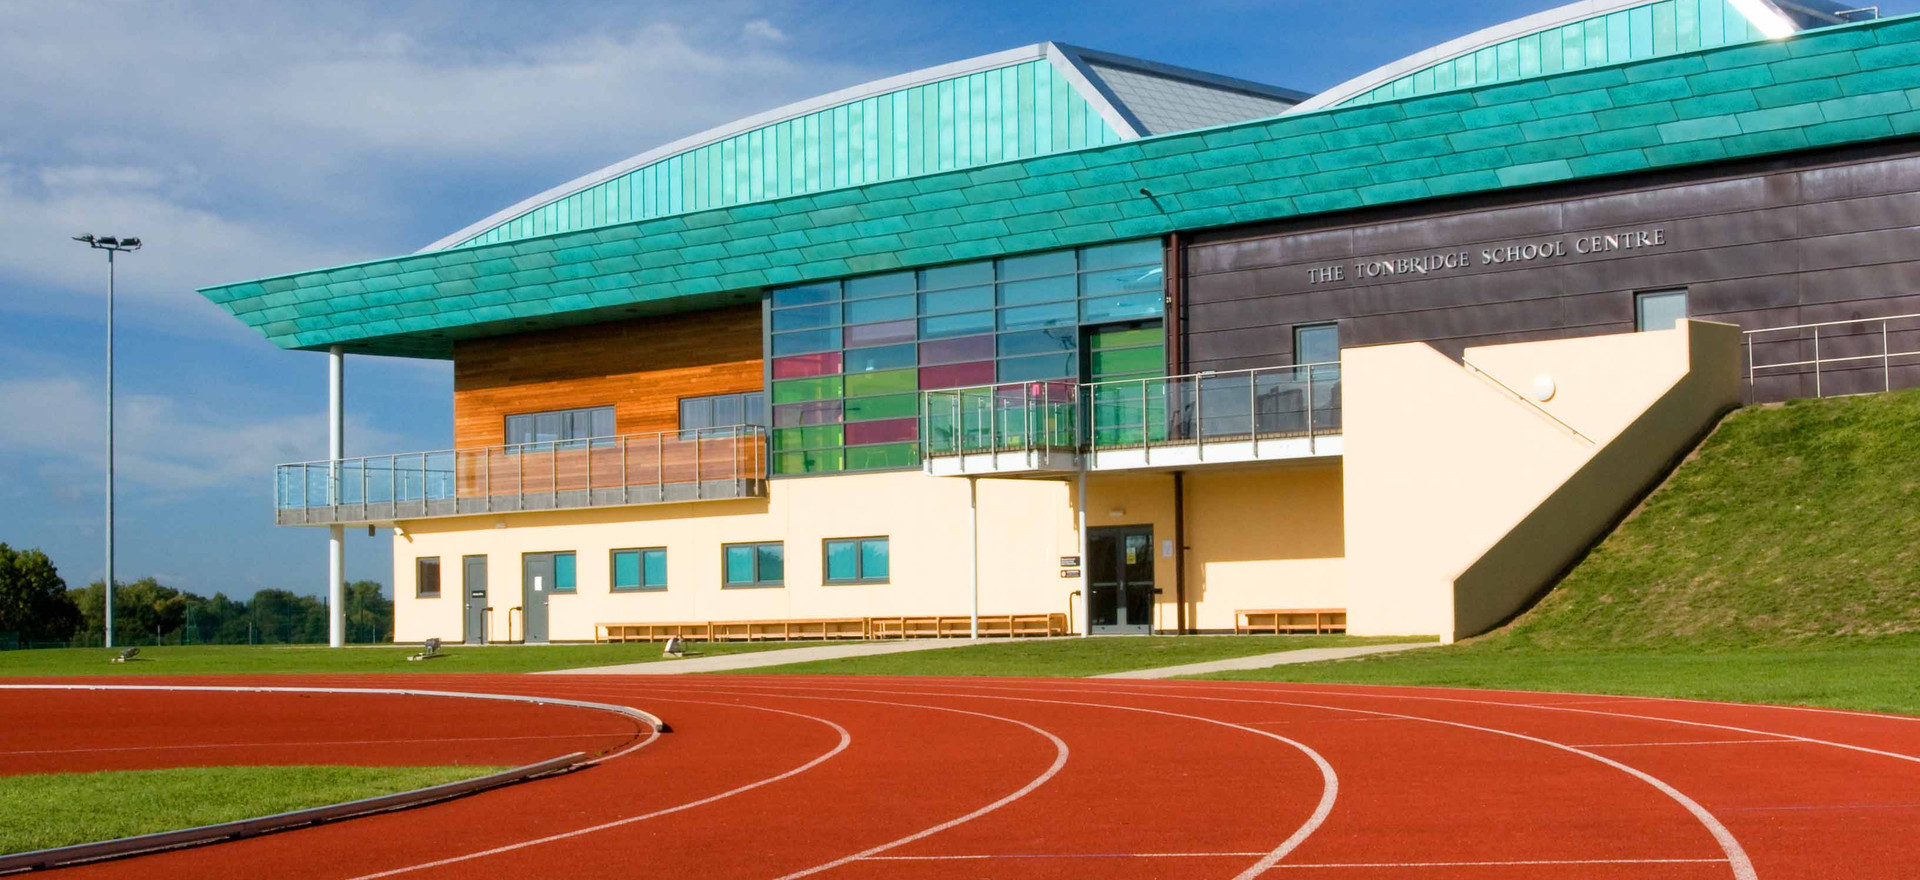 Tonbridge School Centre & track reduced.